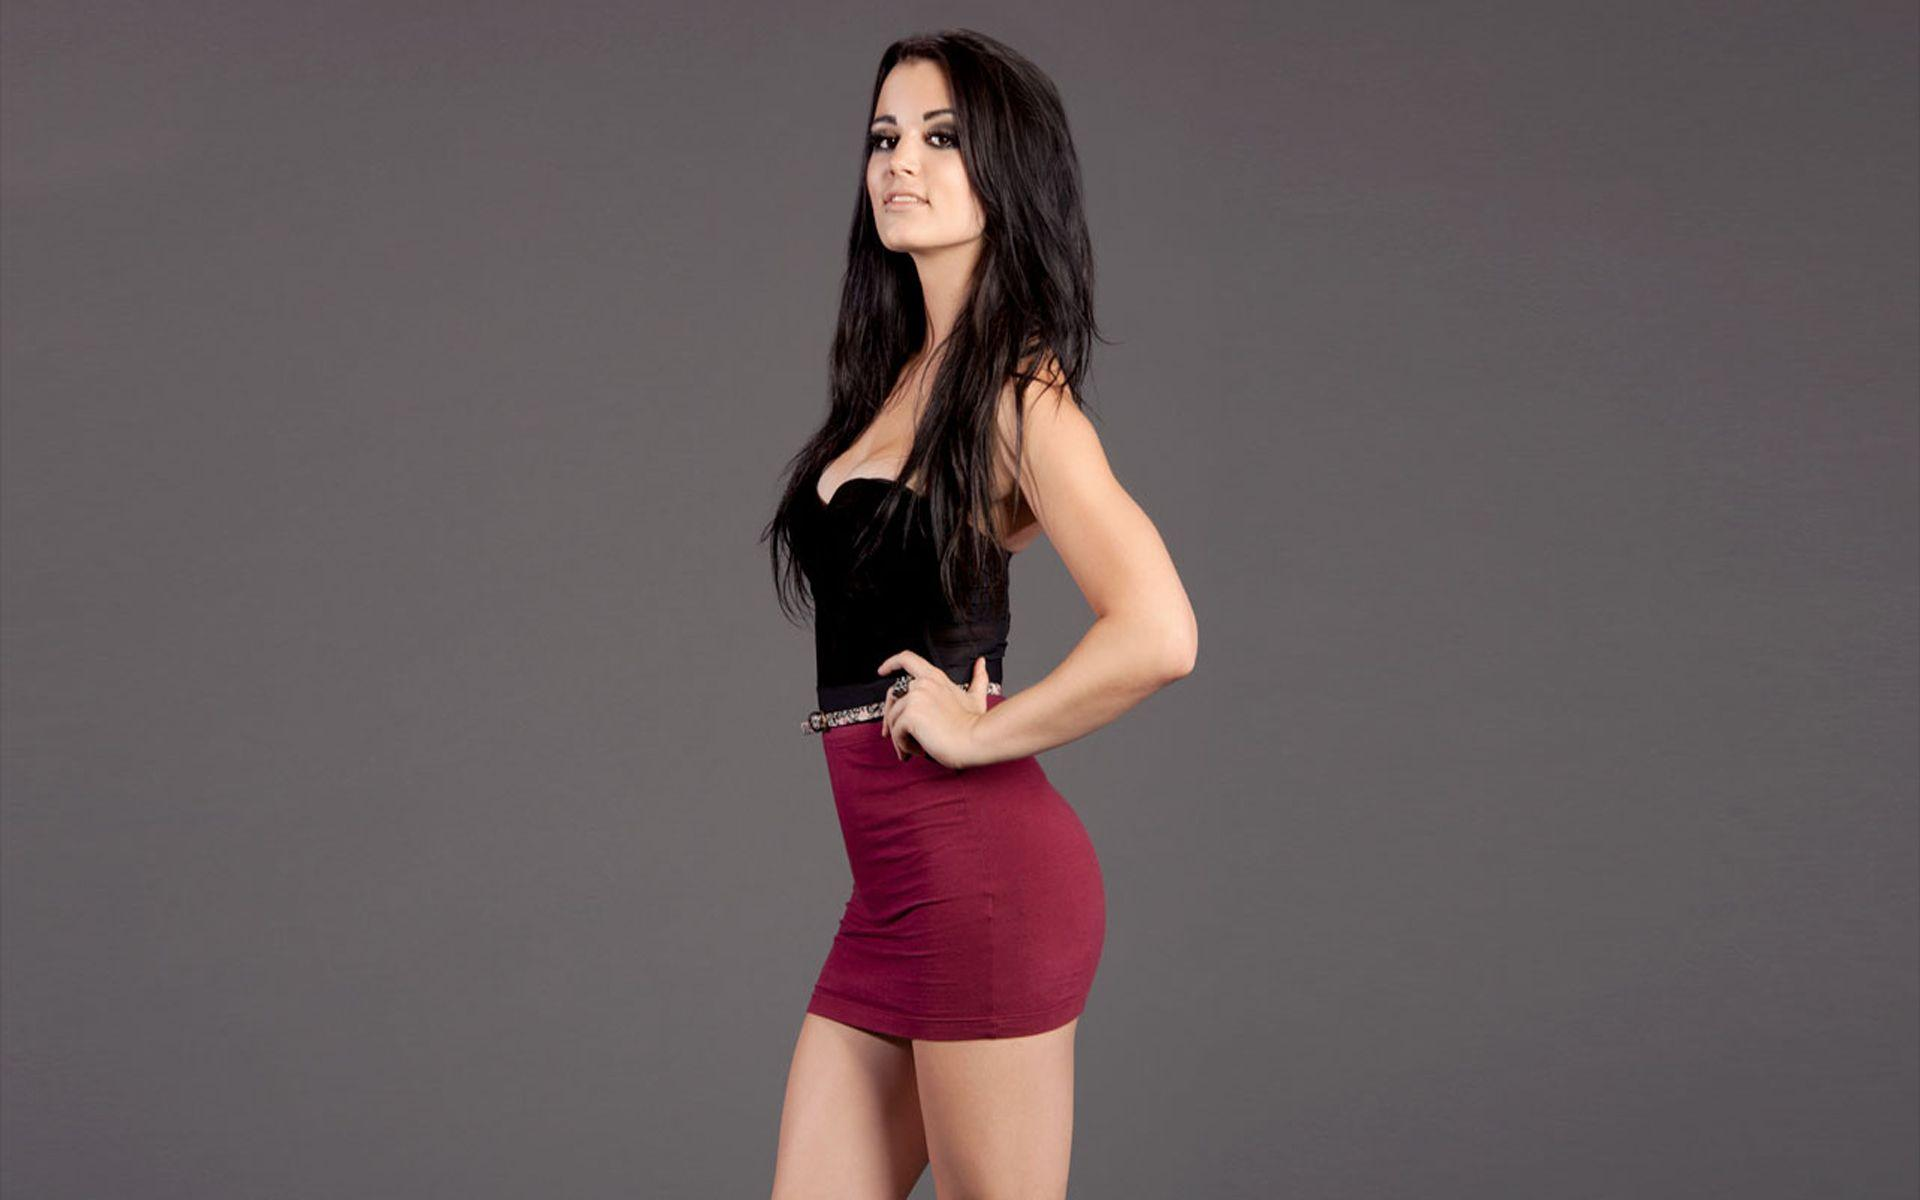 Sexy Paige New Hot HD Wallpapers | Get Latest Wallpapers | Paige WWE ...